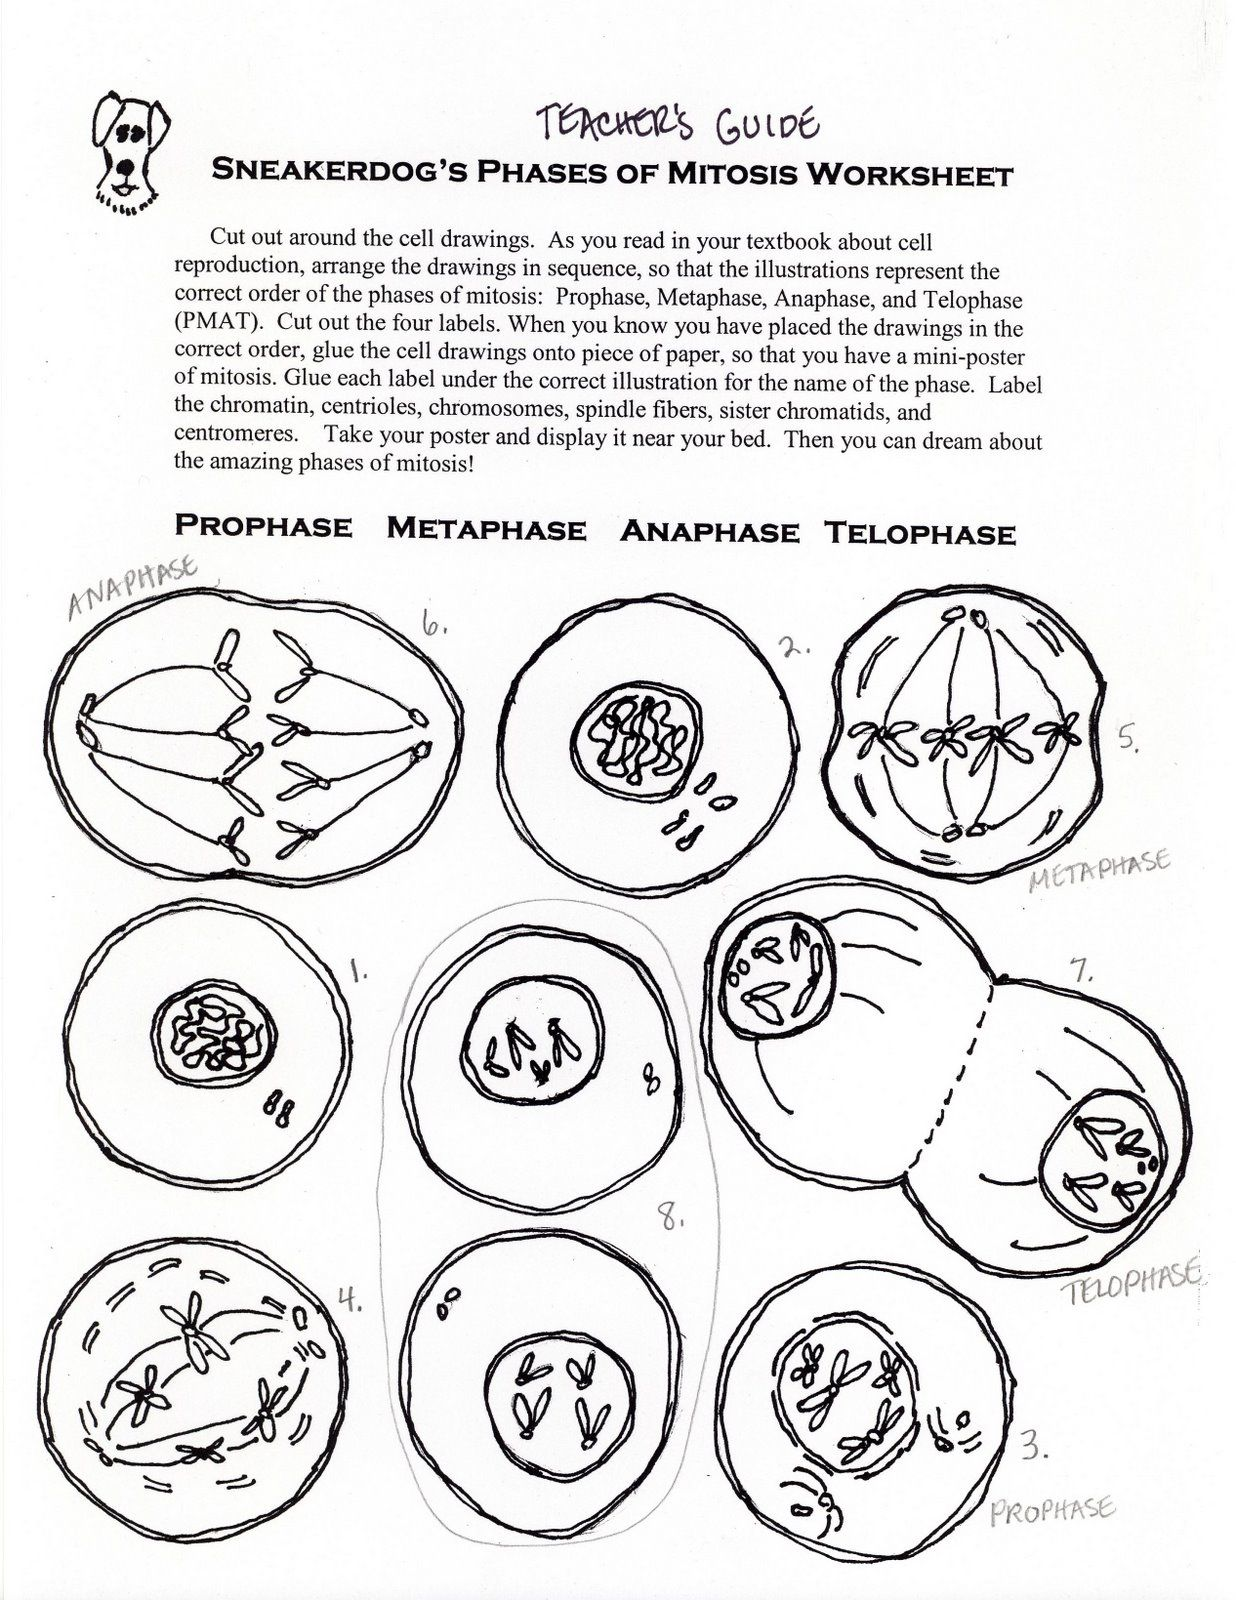 Science Tut Ph Ses Of Mitosis Ctivity W Ksheet L E Science